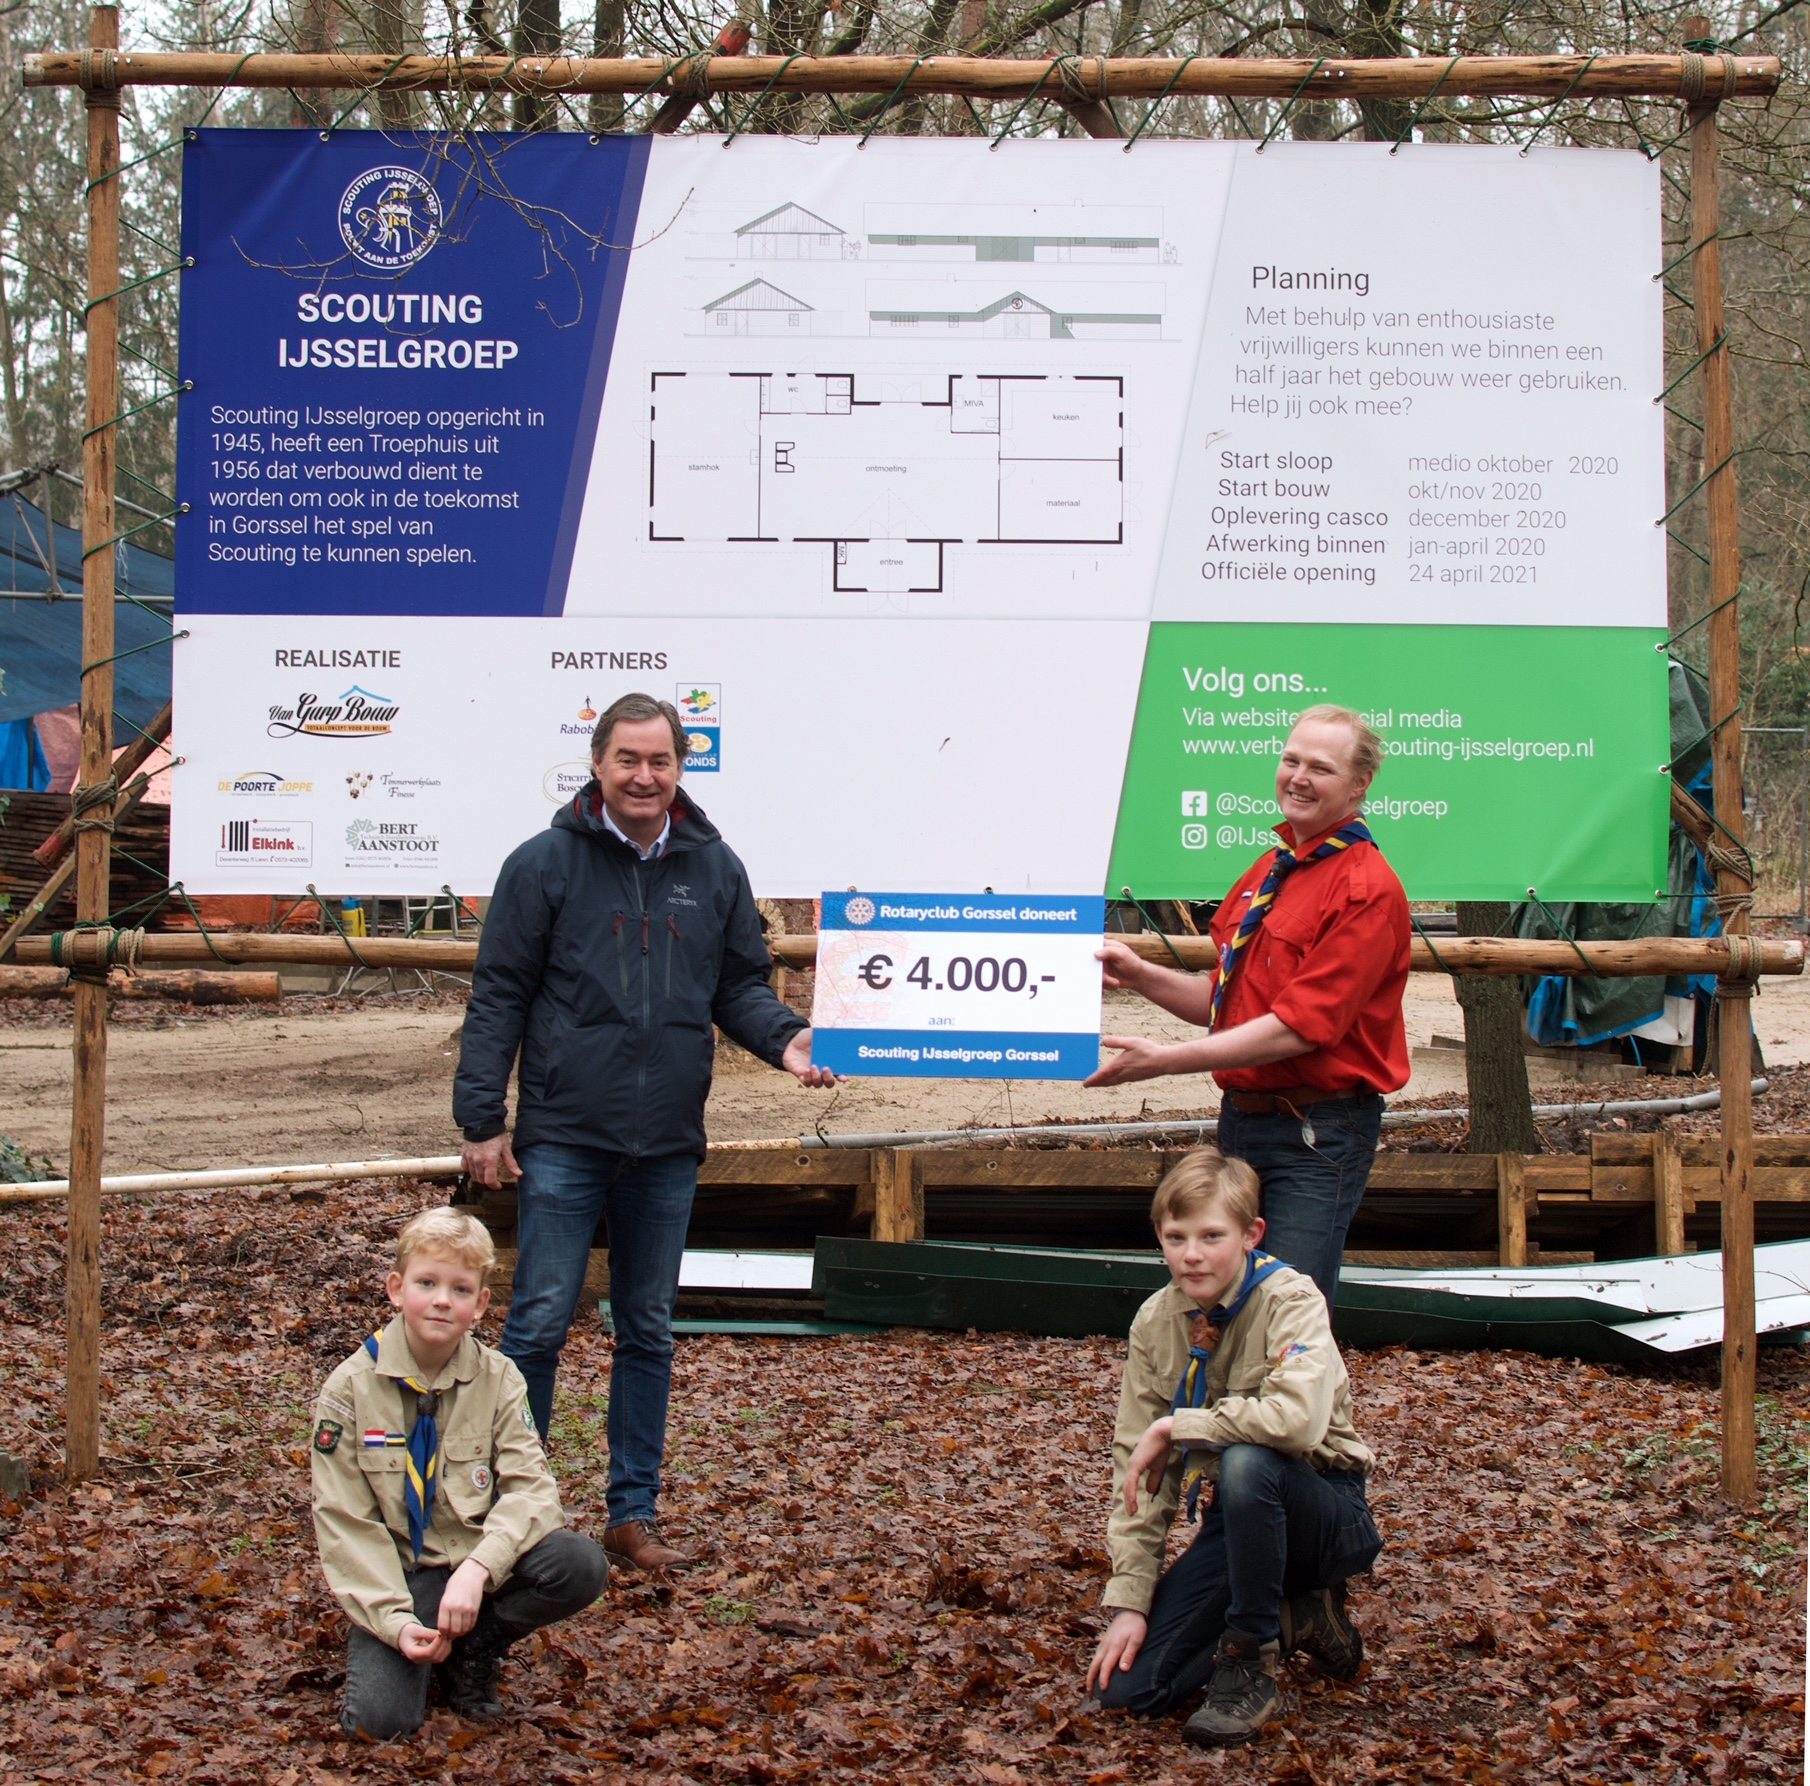 Rotary Gorssel steunt bouwplan Scouting met €4.000